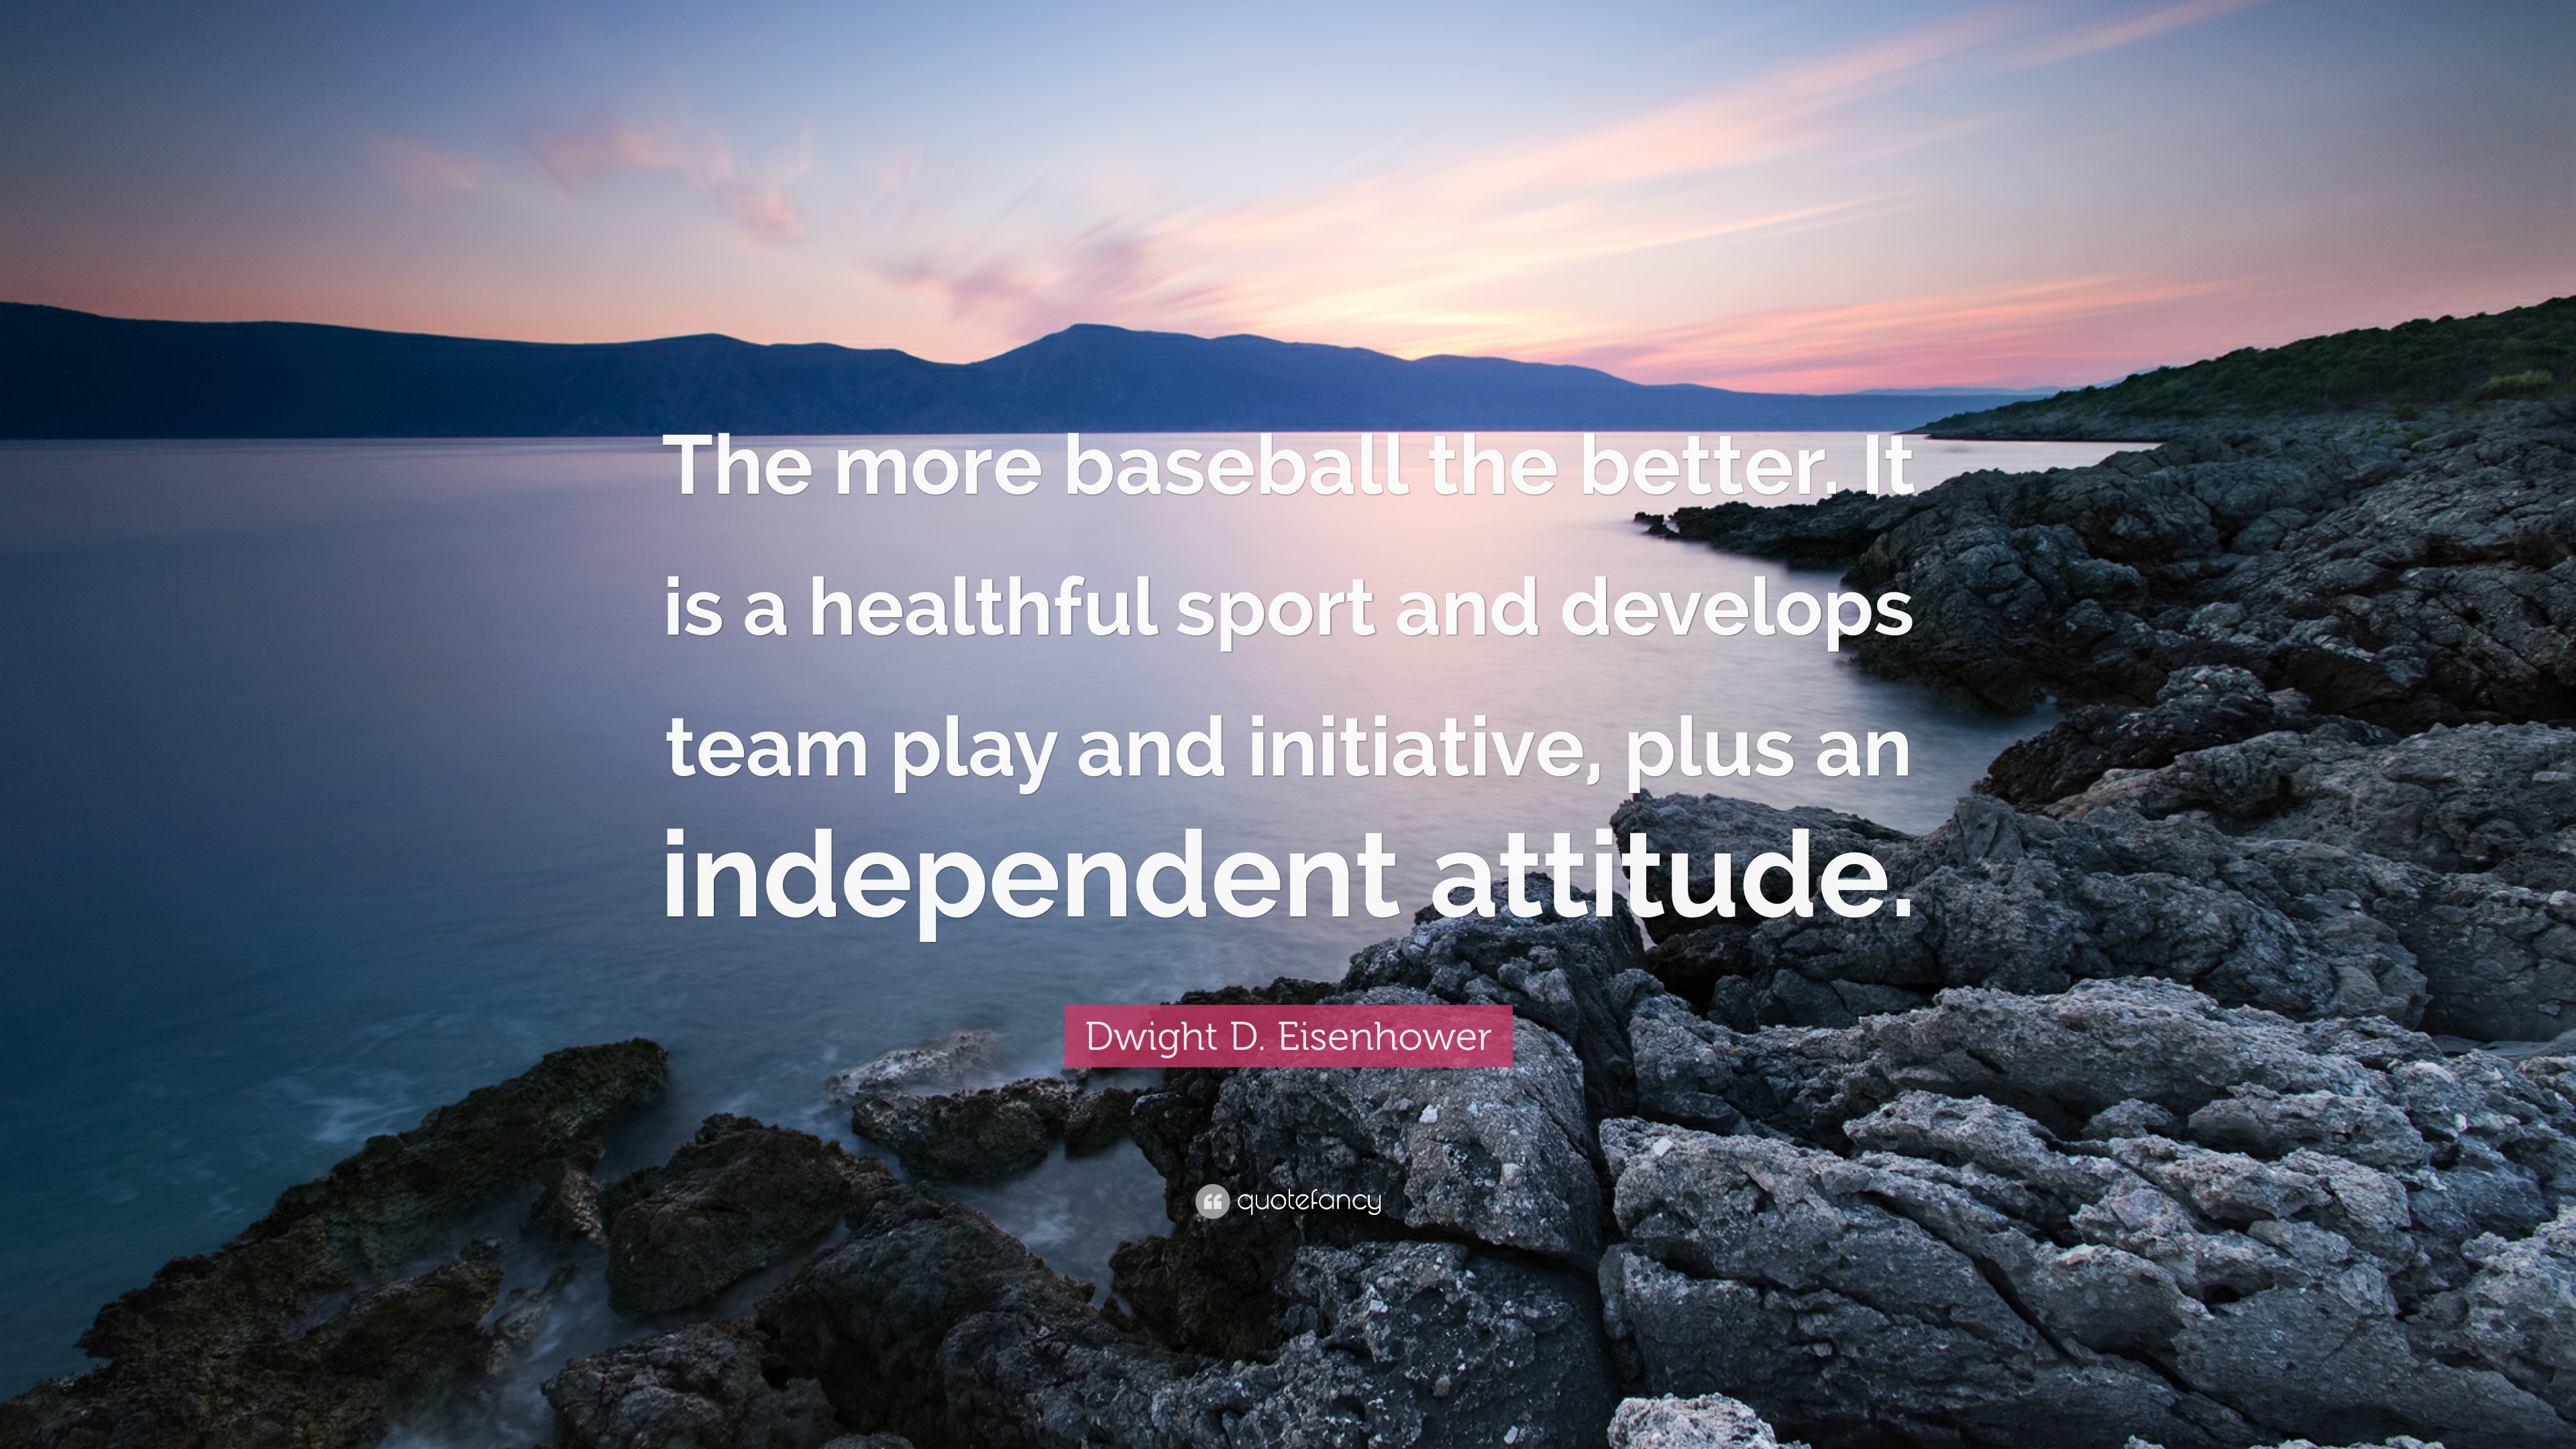 Baseball Quotes The More Better It Is A Healthful Sport And